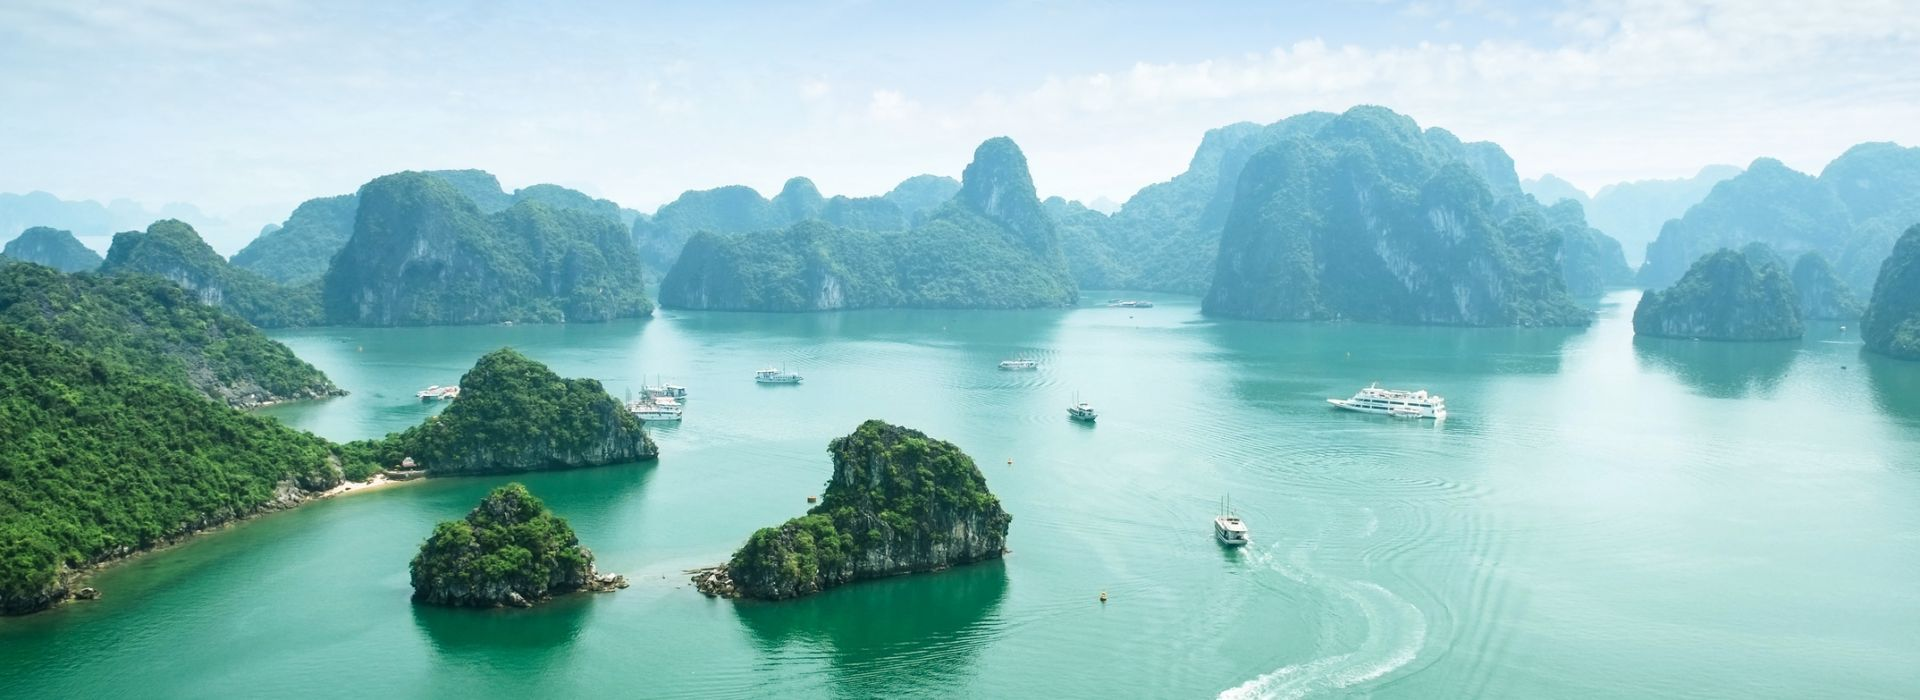 Trekking Tours in Ho Chi Minh City